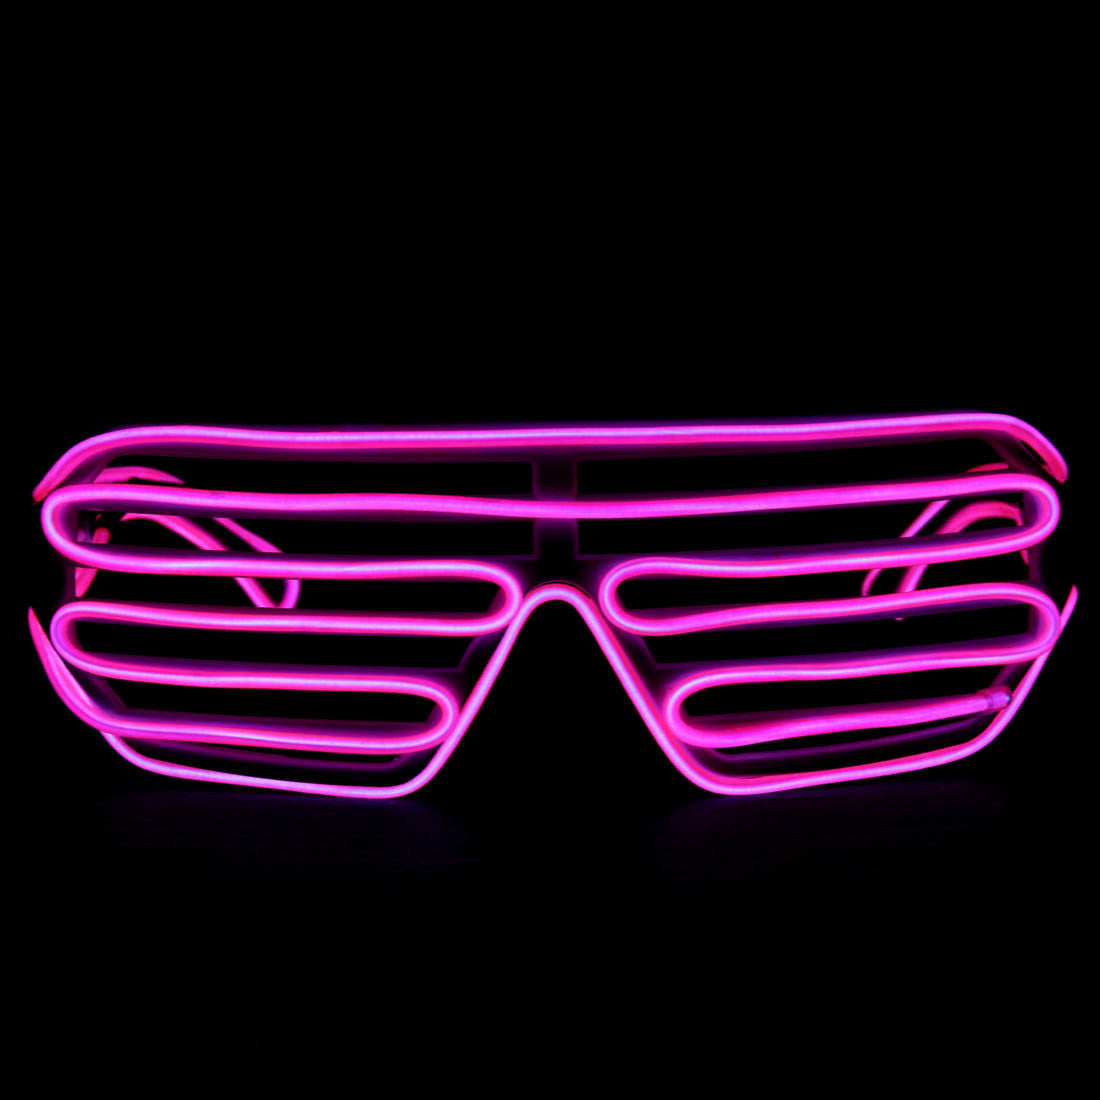 Pink Light Up El Wire Shutter Glasses - SuperFried